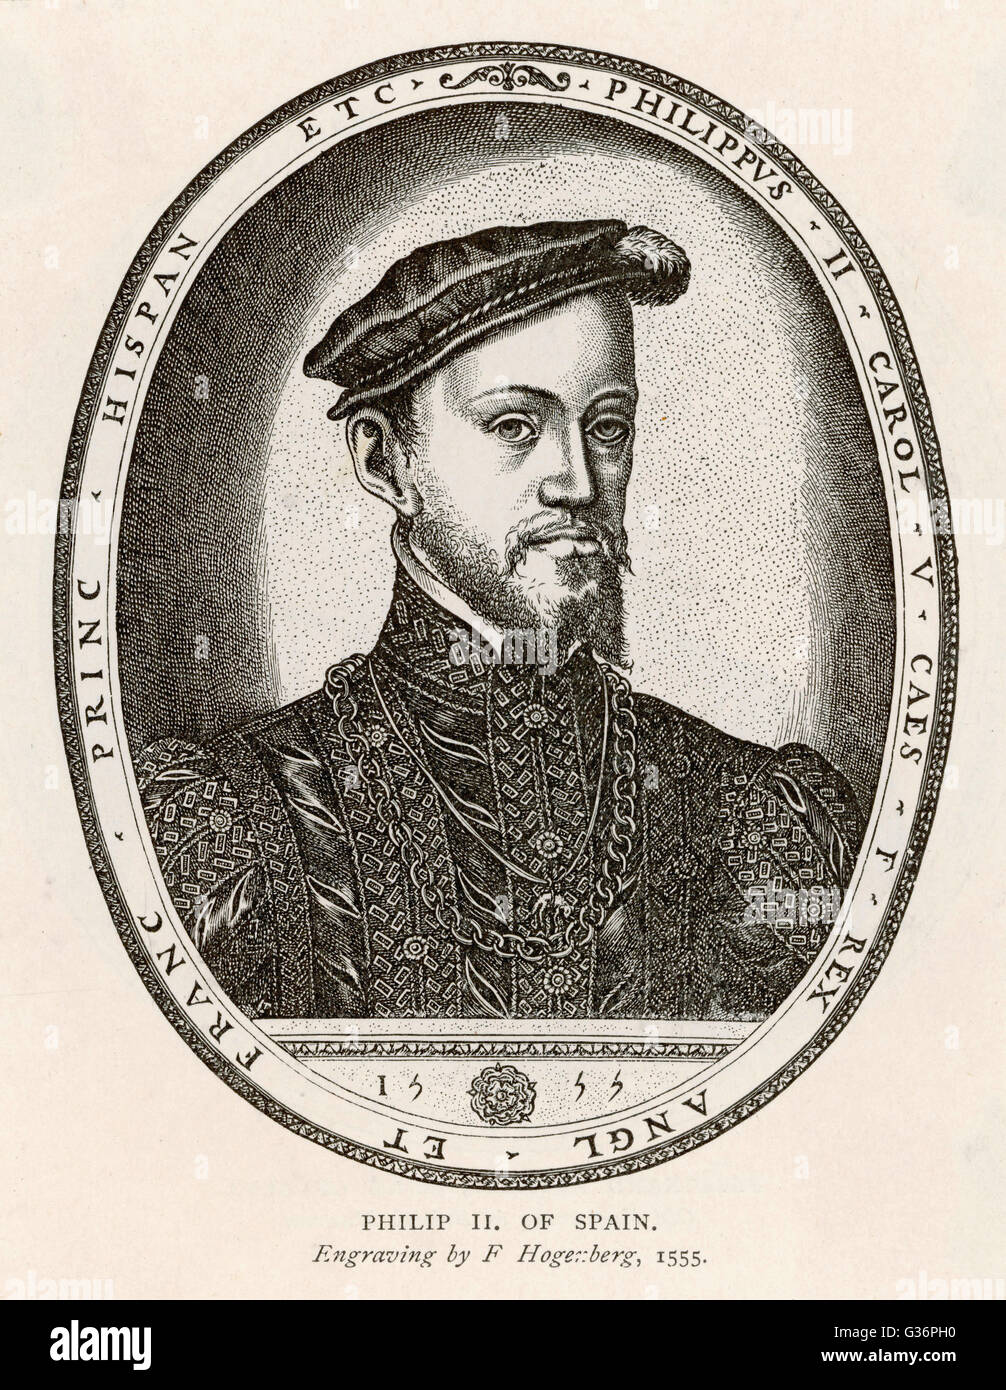 Philip (Felipe) II, King of Spain (reigned 1556-1598). He was also King of Portugal, Naples and Sicily, and, while Stock Photo